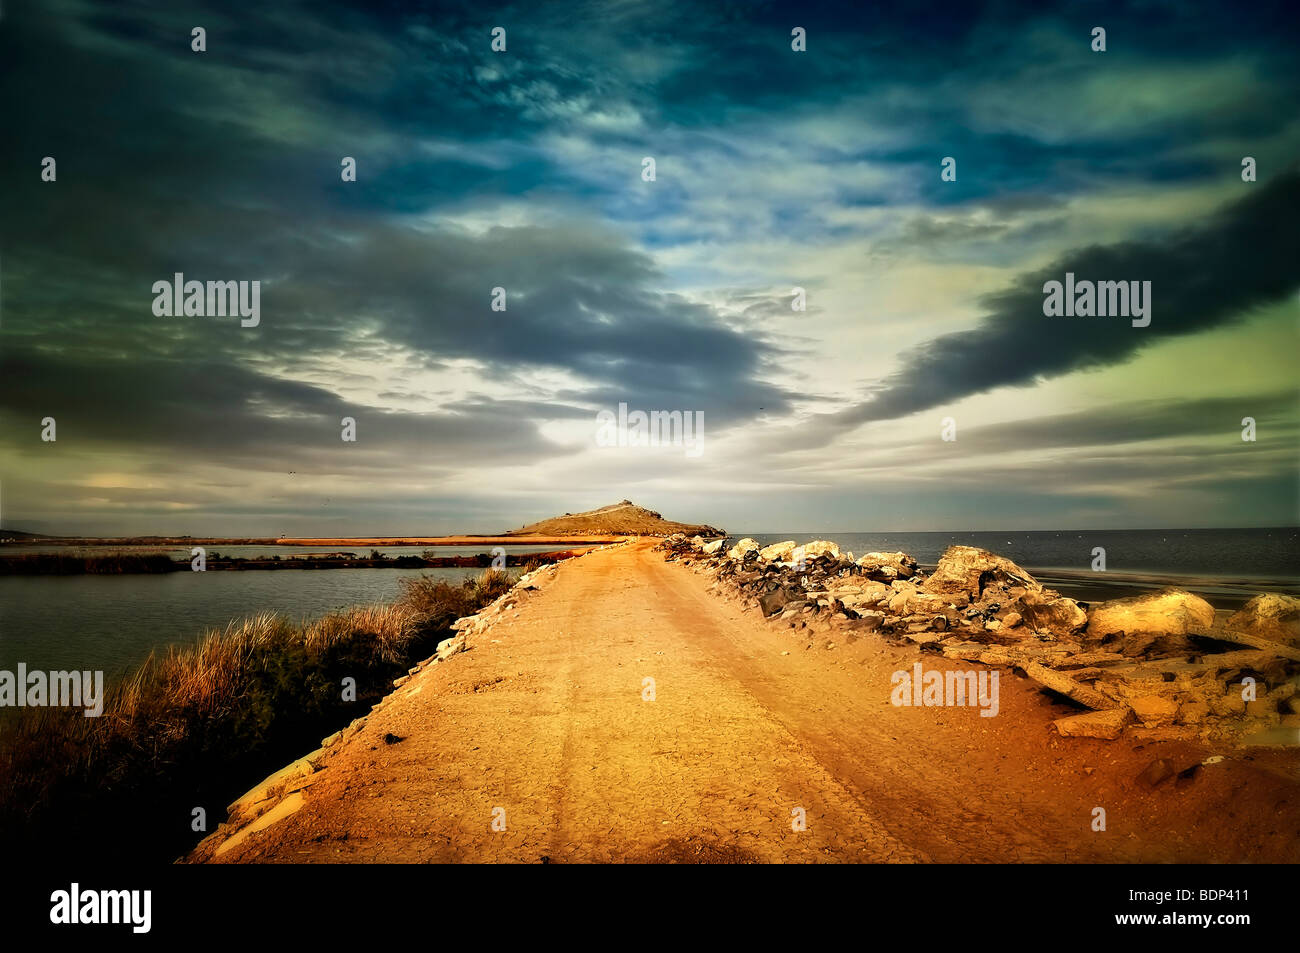 A road surrounded by water leading into the distance beneath a cloudy sky - Stock Image